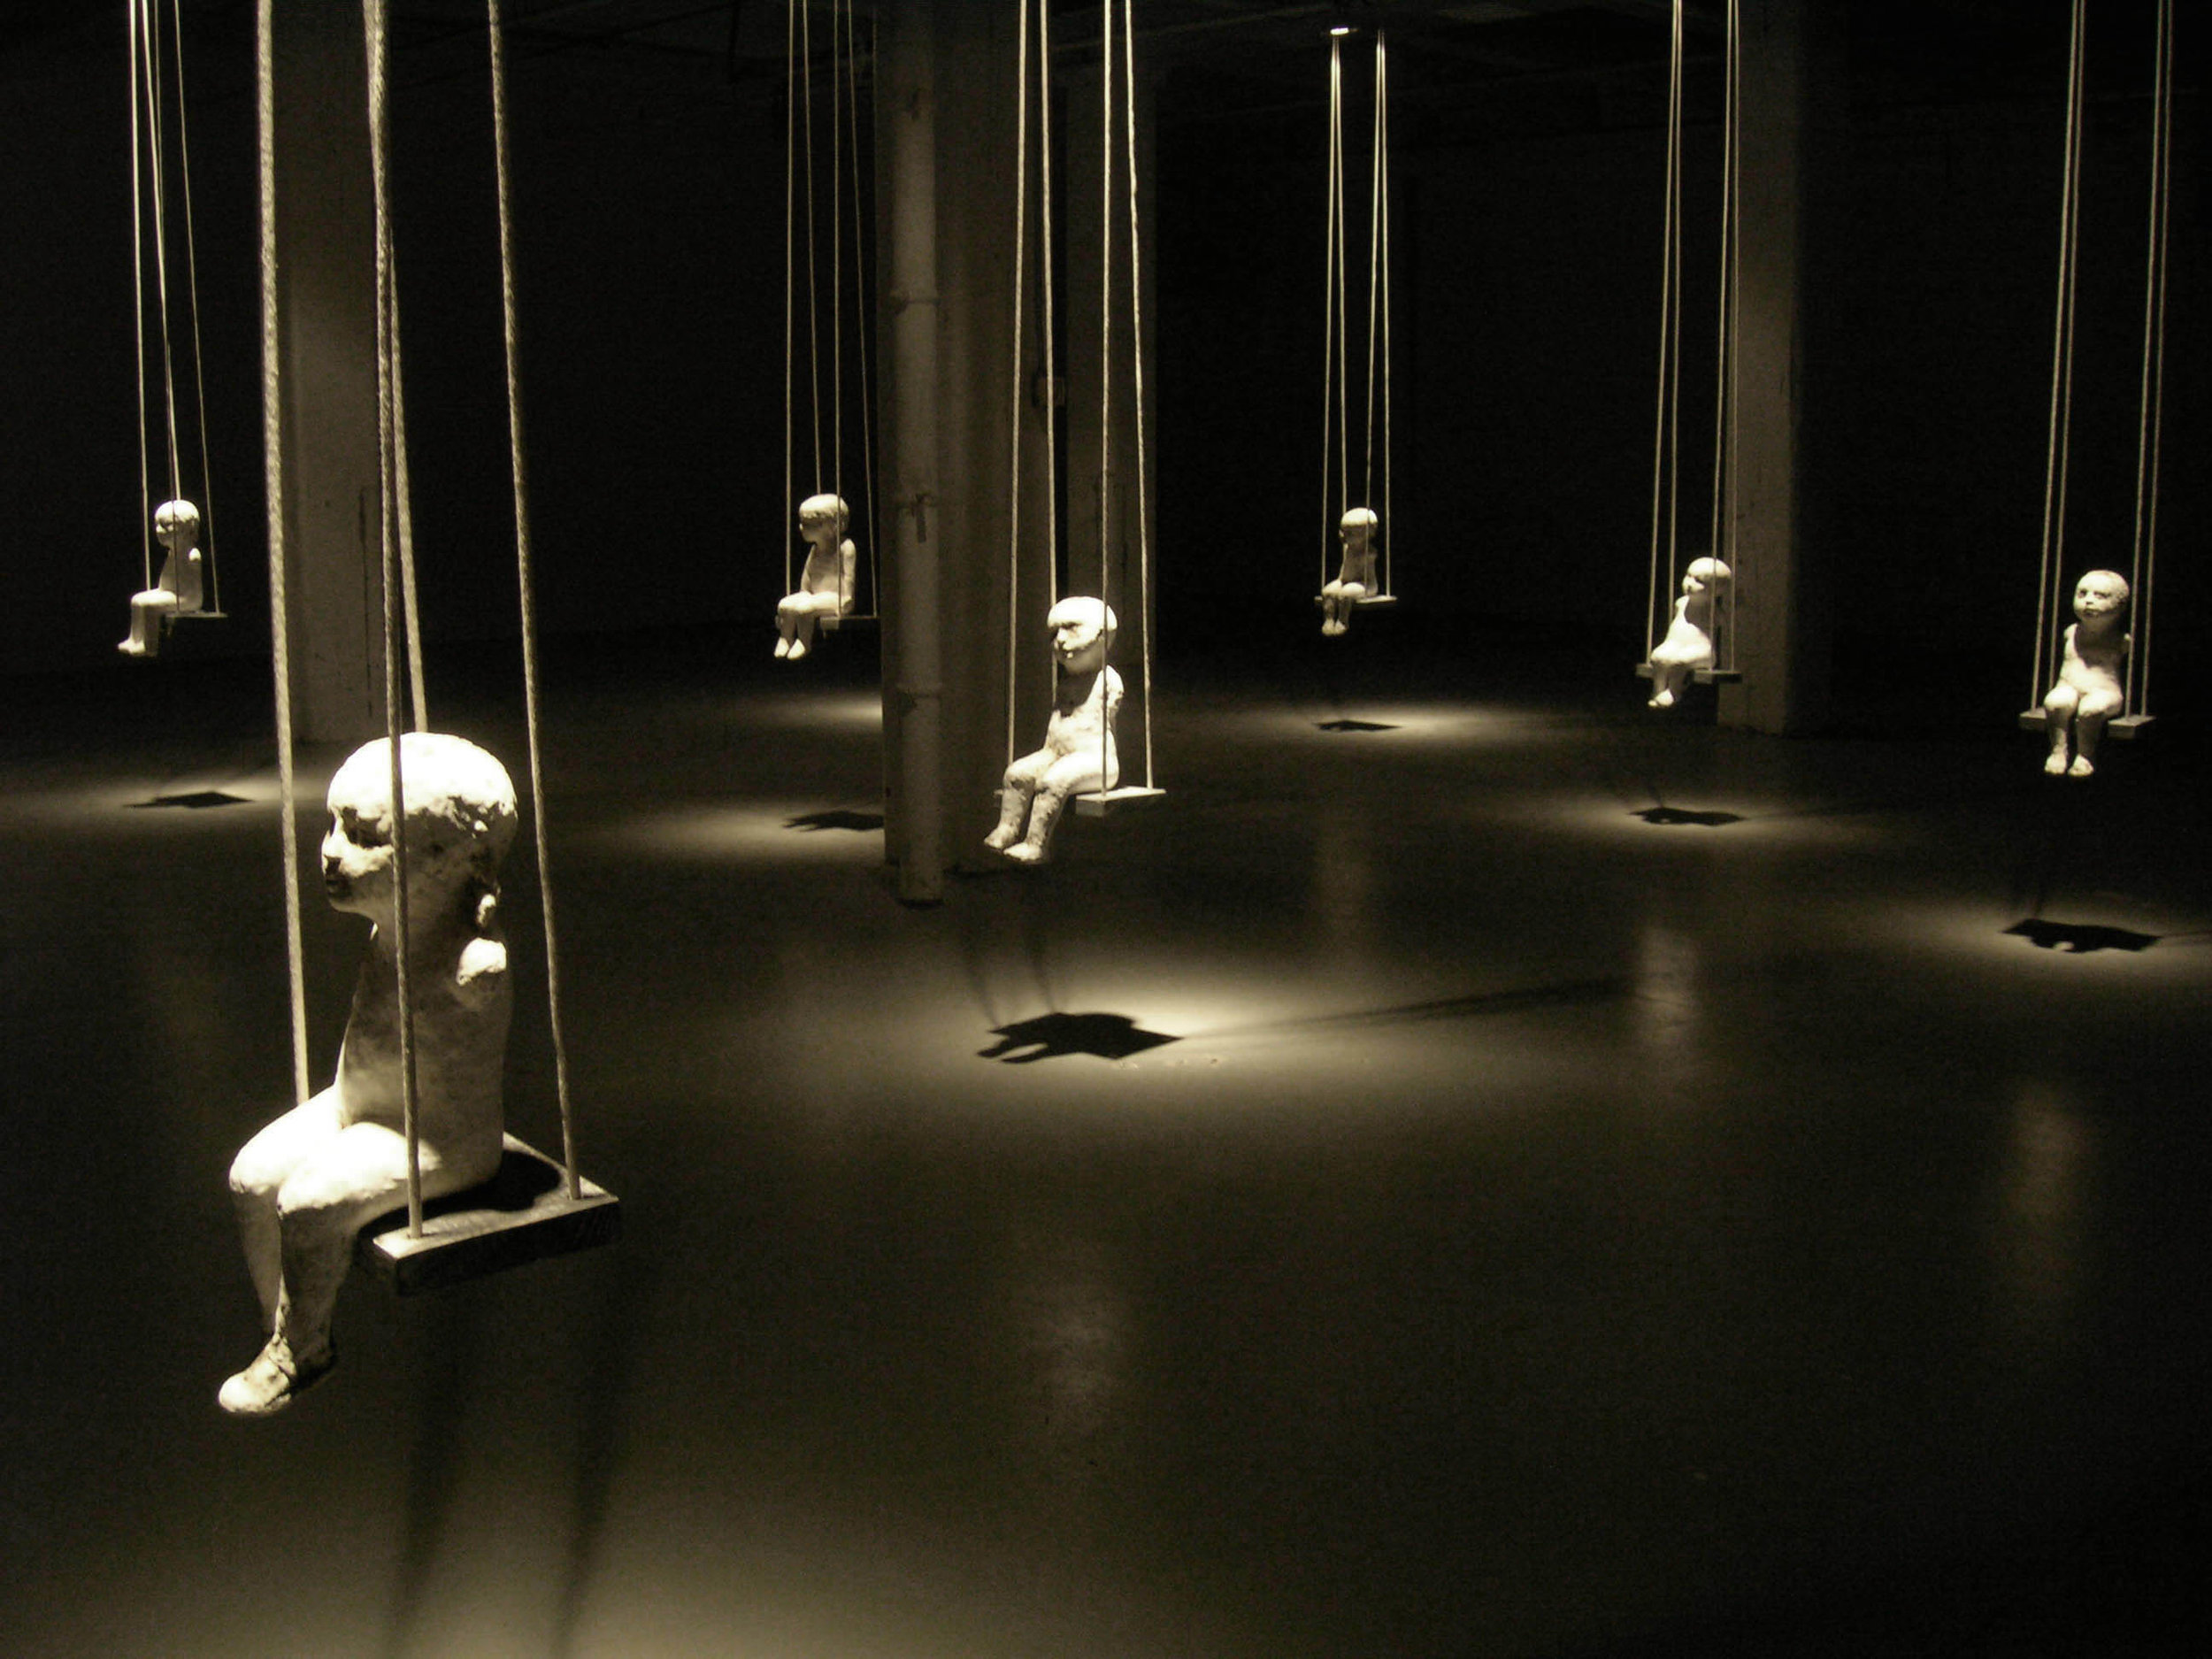 Falling Rope of Silence, 2005, Ceramic, rope, wood, Installation view, 14 x 40 x 50 ft.  Bemis Center for Contemporary Art, Omaha, Nebraska